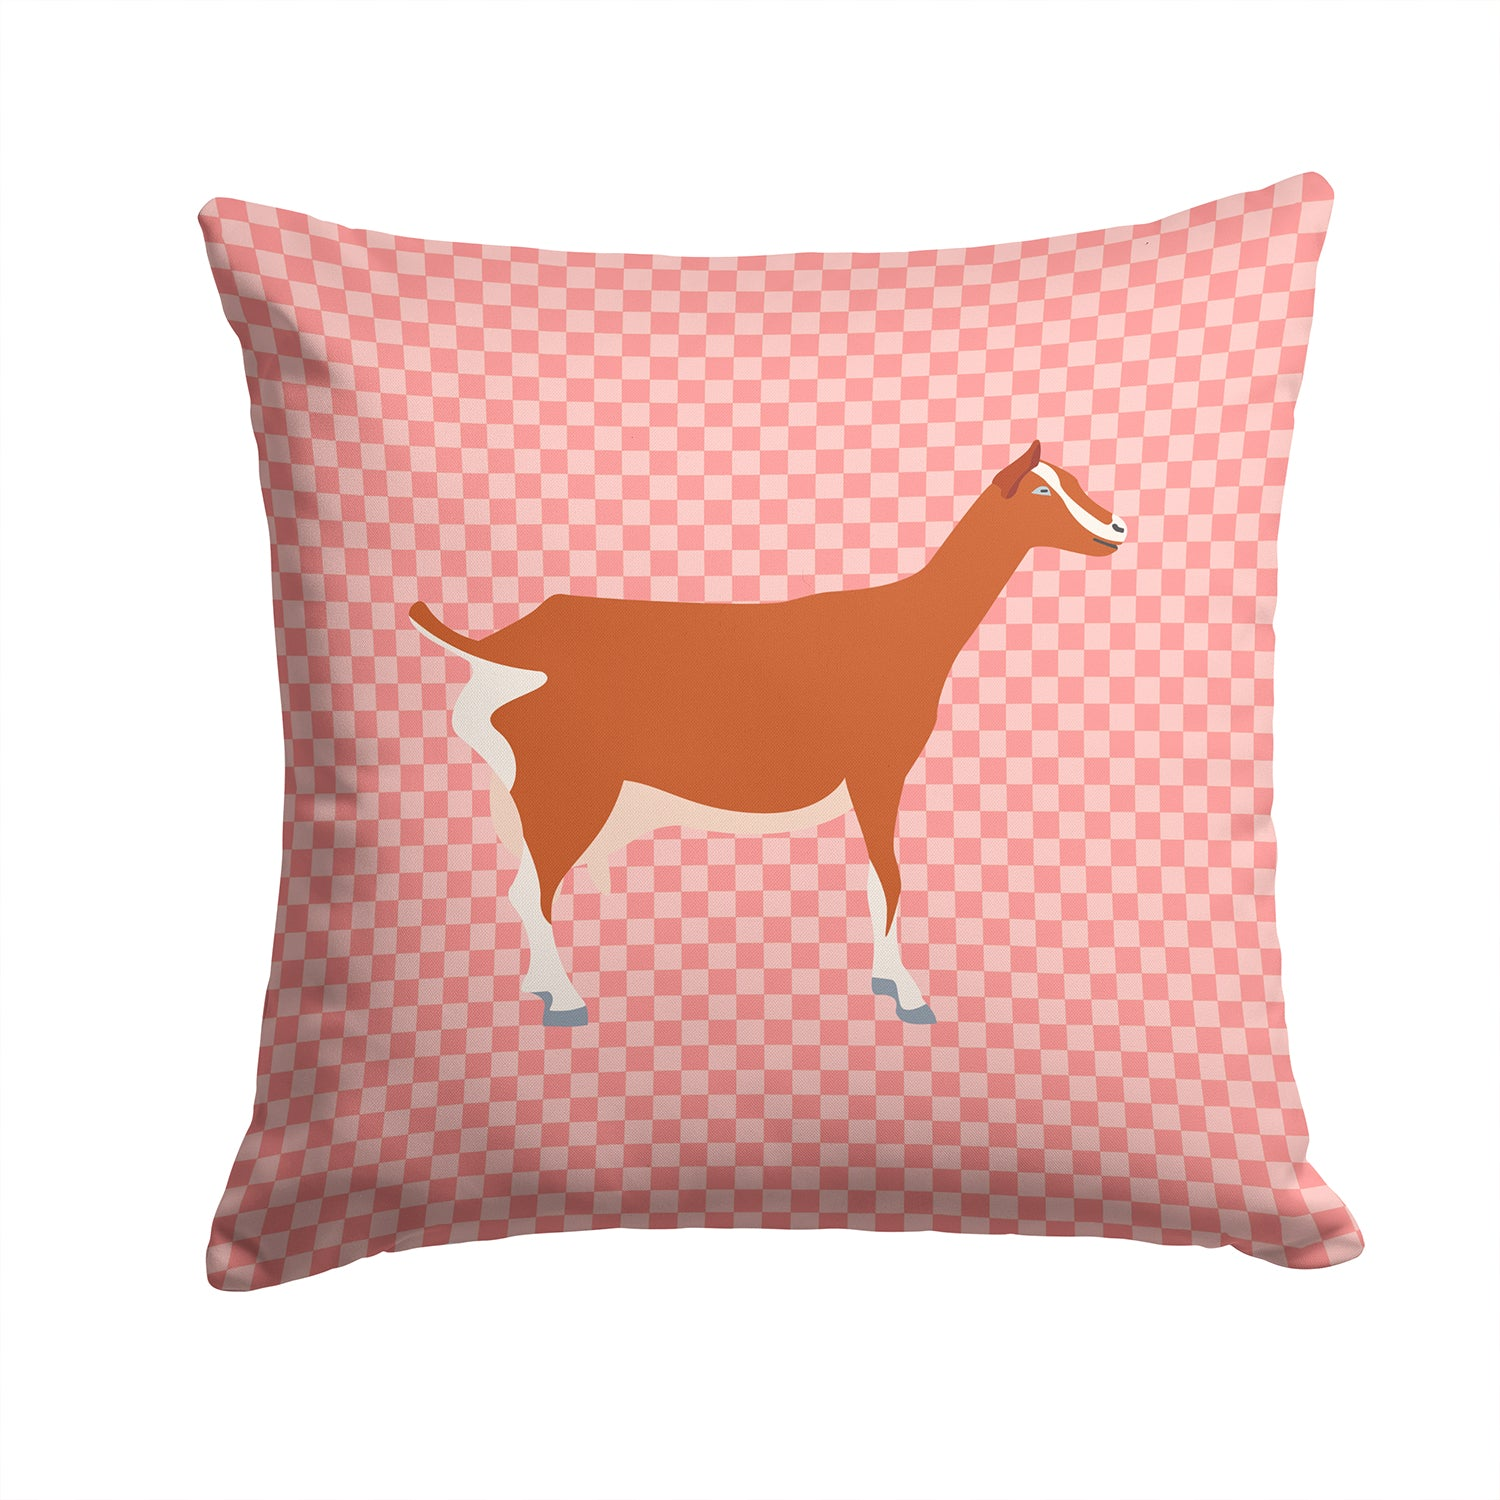 Toggenburger Goat Pink Check Fabric Decorative Pillow BB7881PW1414 by Caroline's Treasures